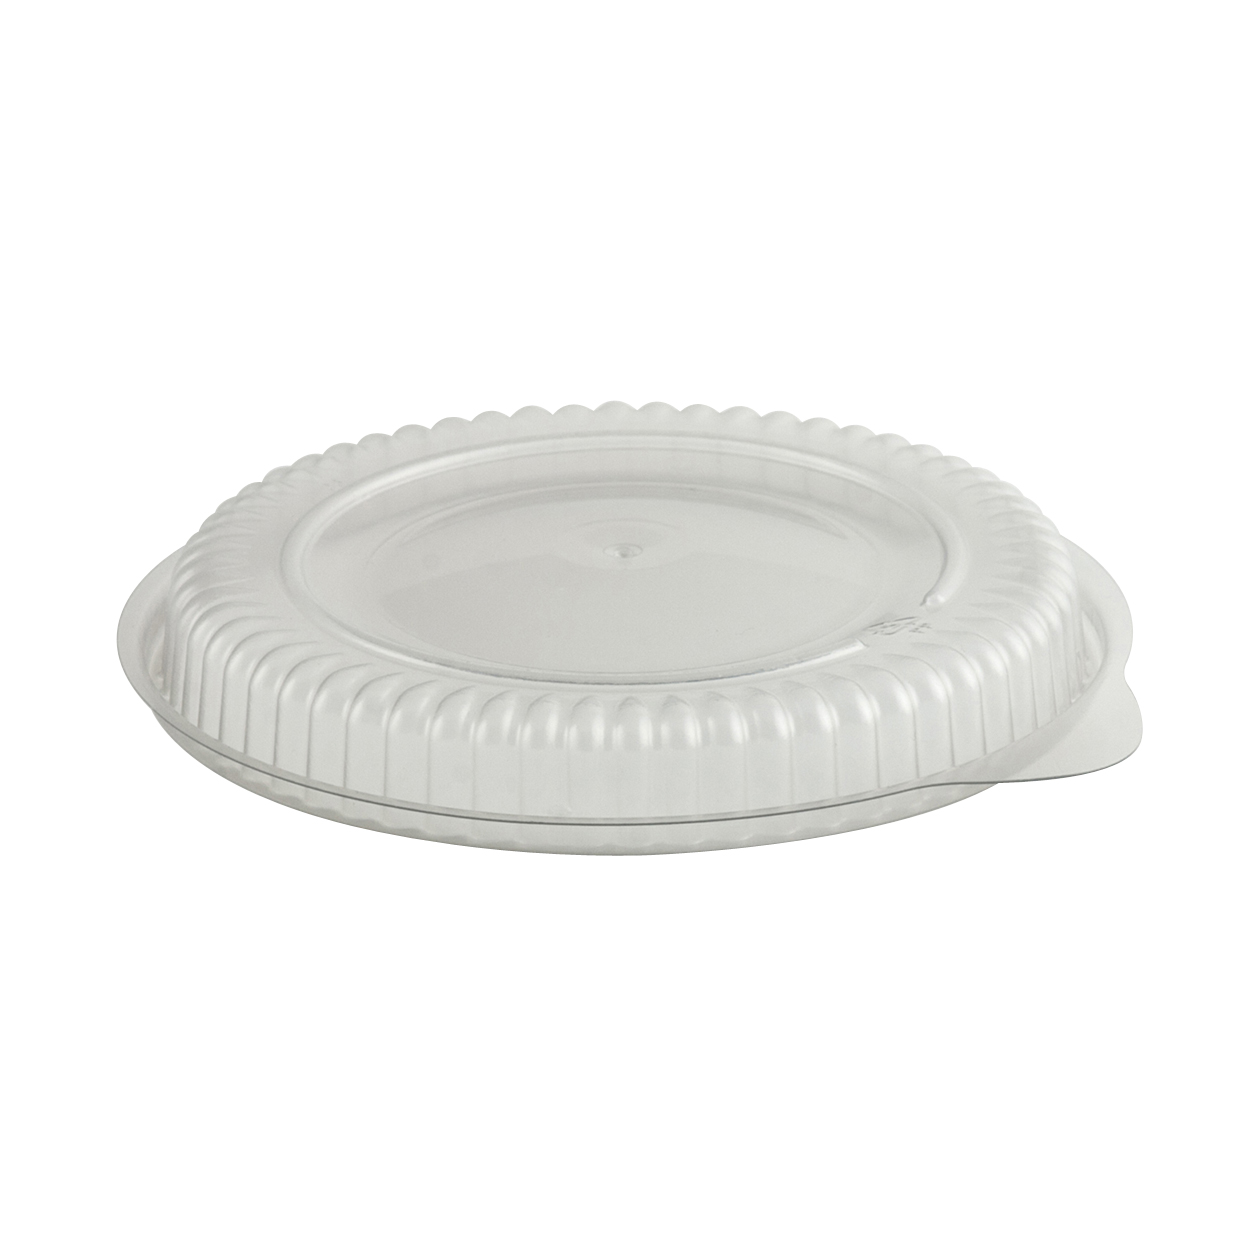 4335802 LH5800D Incredi-Bowl Clear 16 oz. Microwavable